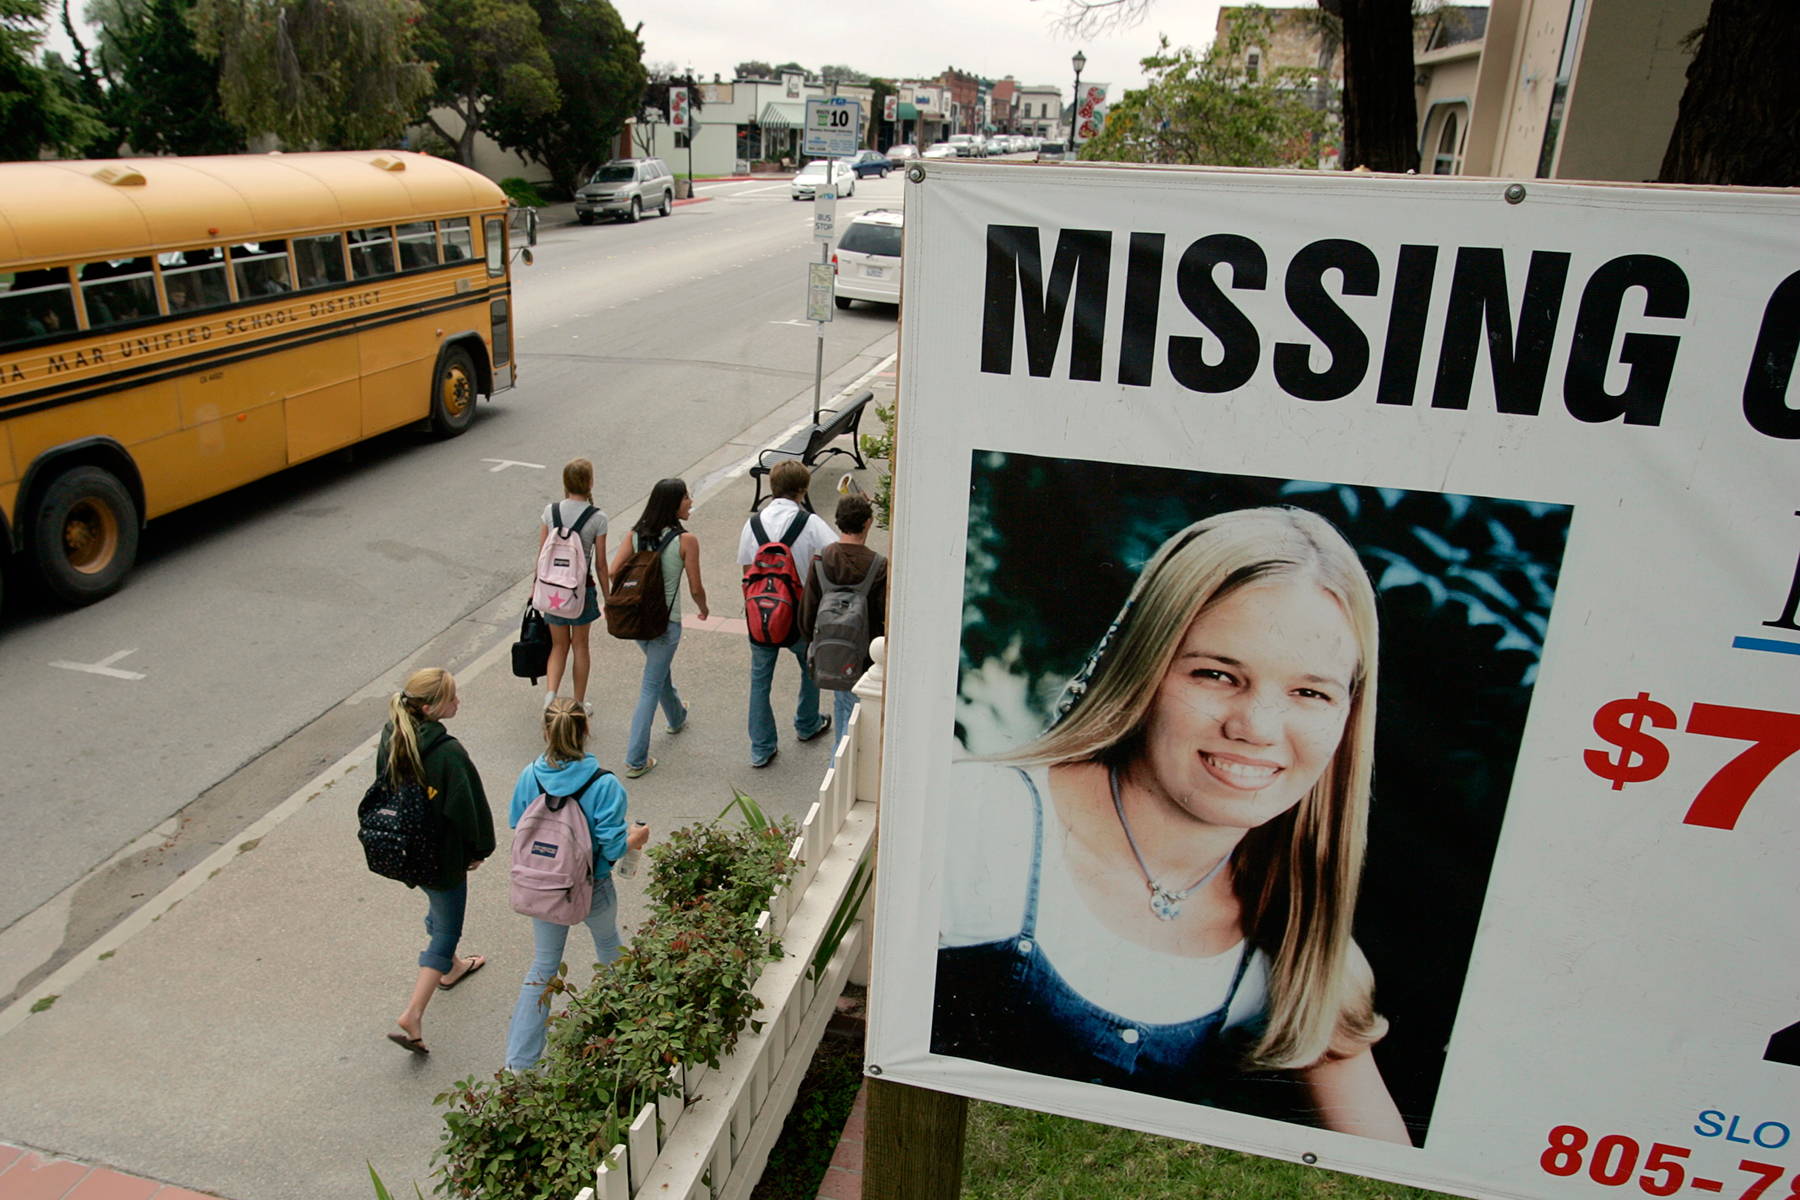 (Torrance) – – Just across the East Branch Street, from city hall, in the California central coast town of Arroyo Grande, is this sign that helps with public awareness in case involving MISSING Cal Poly San Luis Obispo student Kristin Smart. Kristen was in her first year at Cal Poly when she vanished in 1996. Smart was declared legally dead in 2002, despite the fact that her body has never been recovered. The sign is on property belonging to the attorney for the Smart family. PHOTOGRAPHED THURSDAY MAY 18, 2006  (Photo by Don Kelsen/Los Angeles Times via Getty Images)